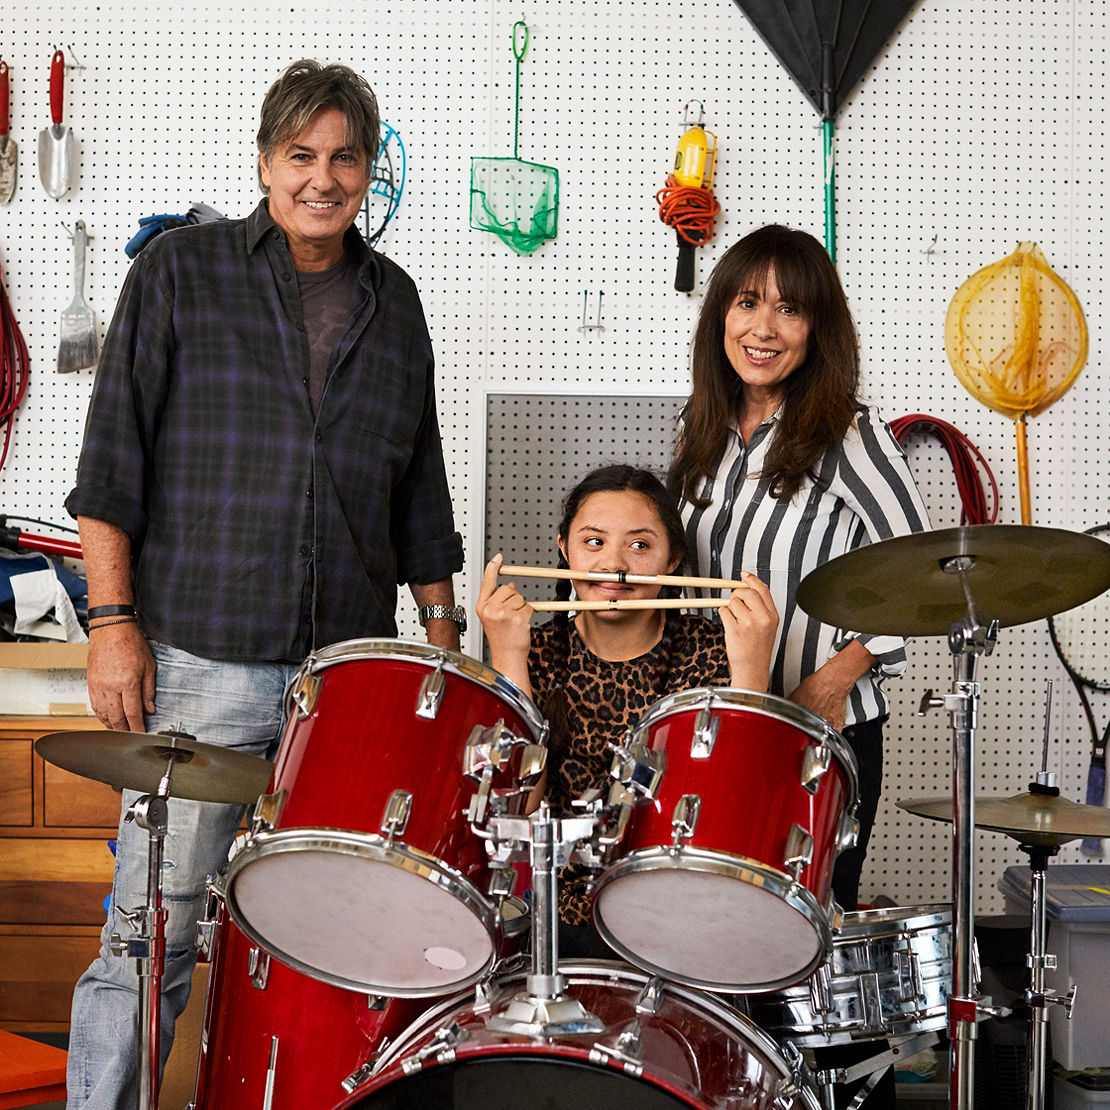 Family in their garage with their daughter and her drum set